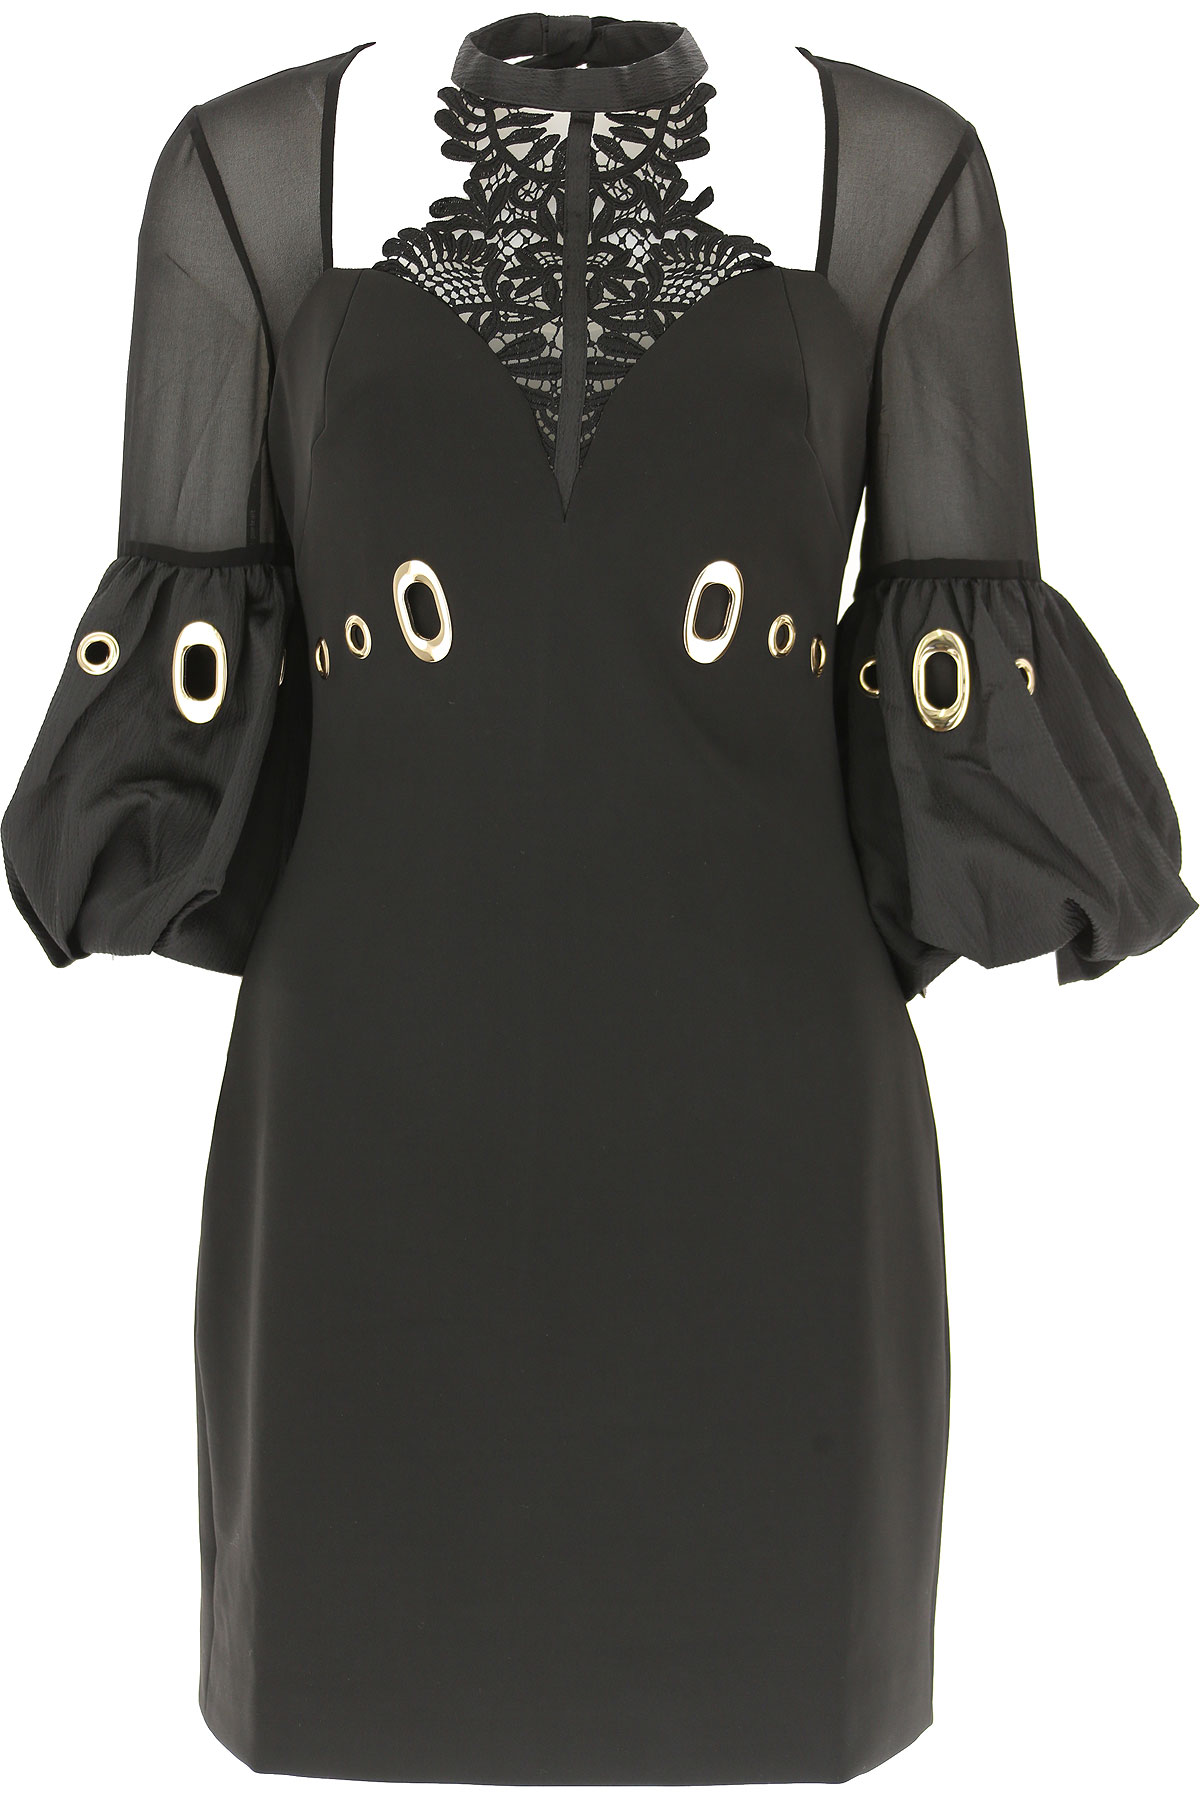 Image of Self-portrait Dress for Women, Evening Cocktail Party, Black, polyester, 2017, UK 6 - US 4 - EU 38 UK 10 - US 8 - EU 42